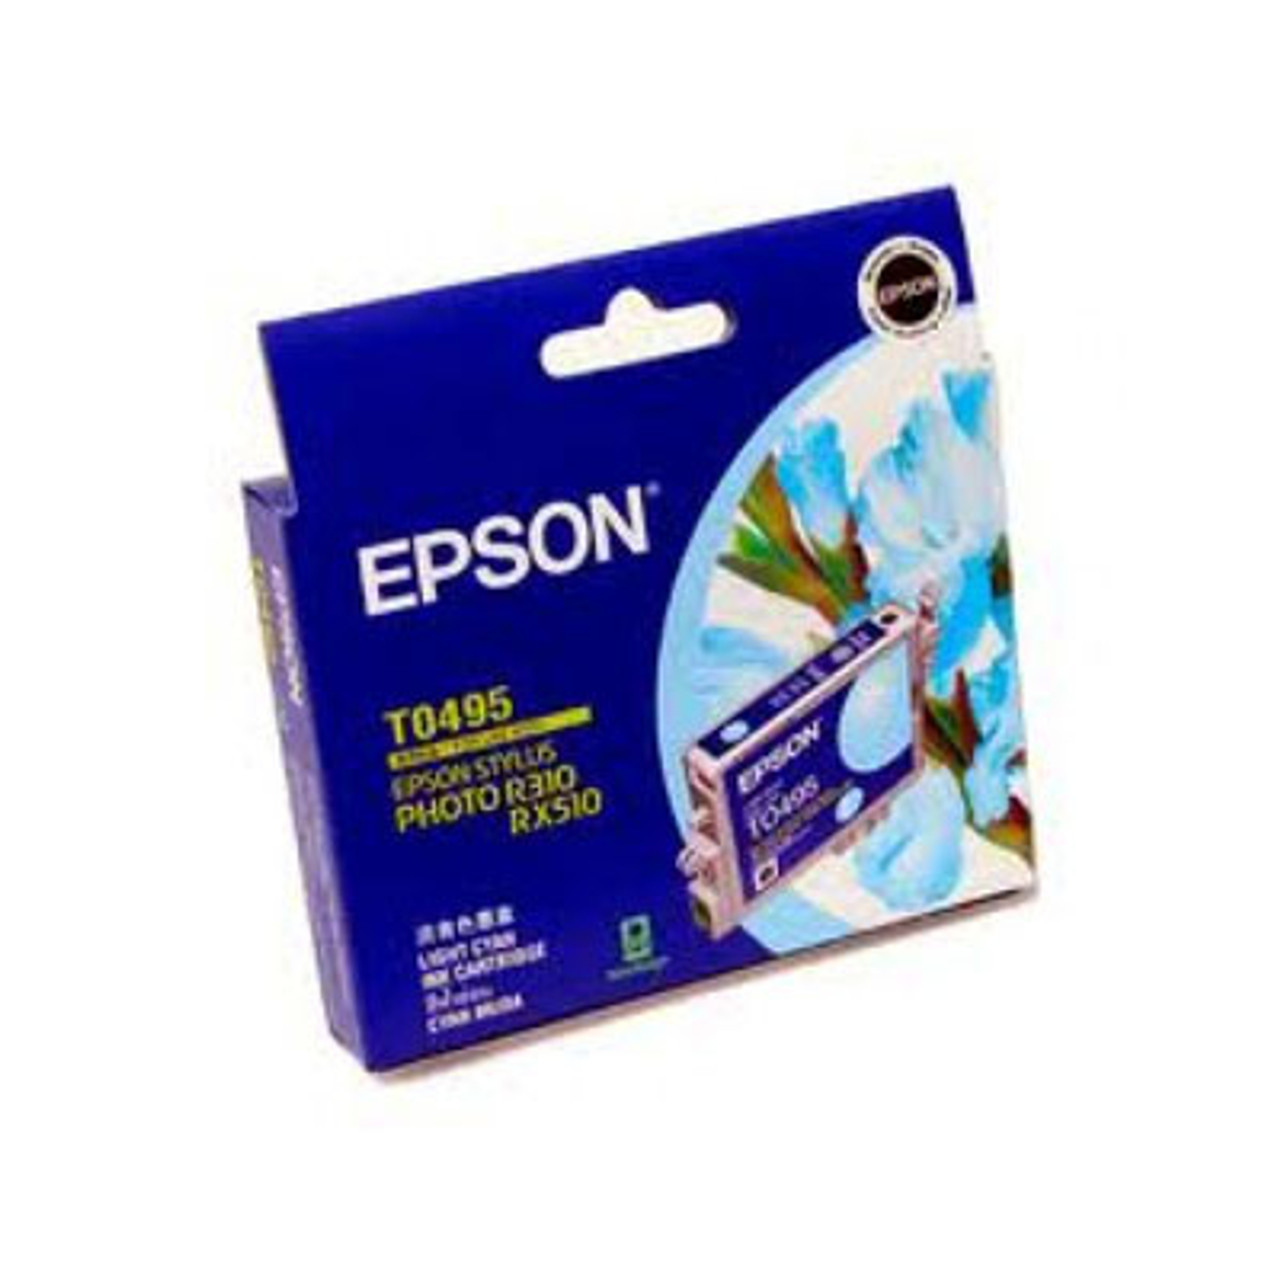 Image for Epson T0495 Light Cyan Ink 430 pages Light Cyan CX Computer Superstore